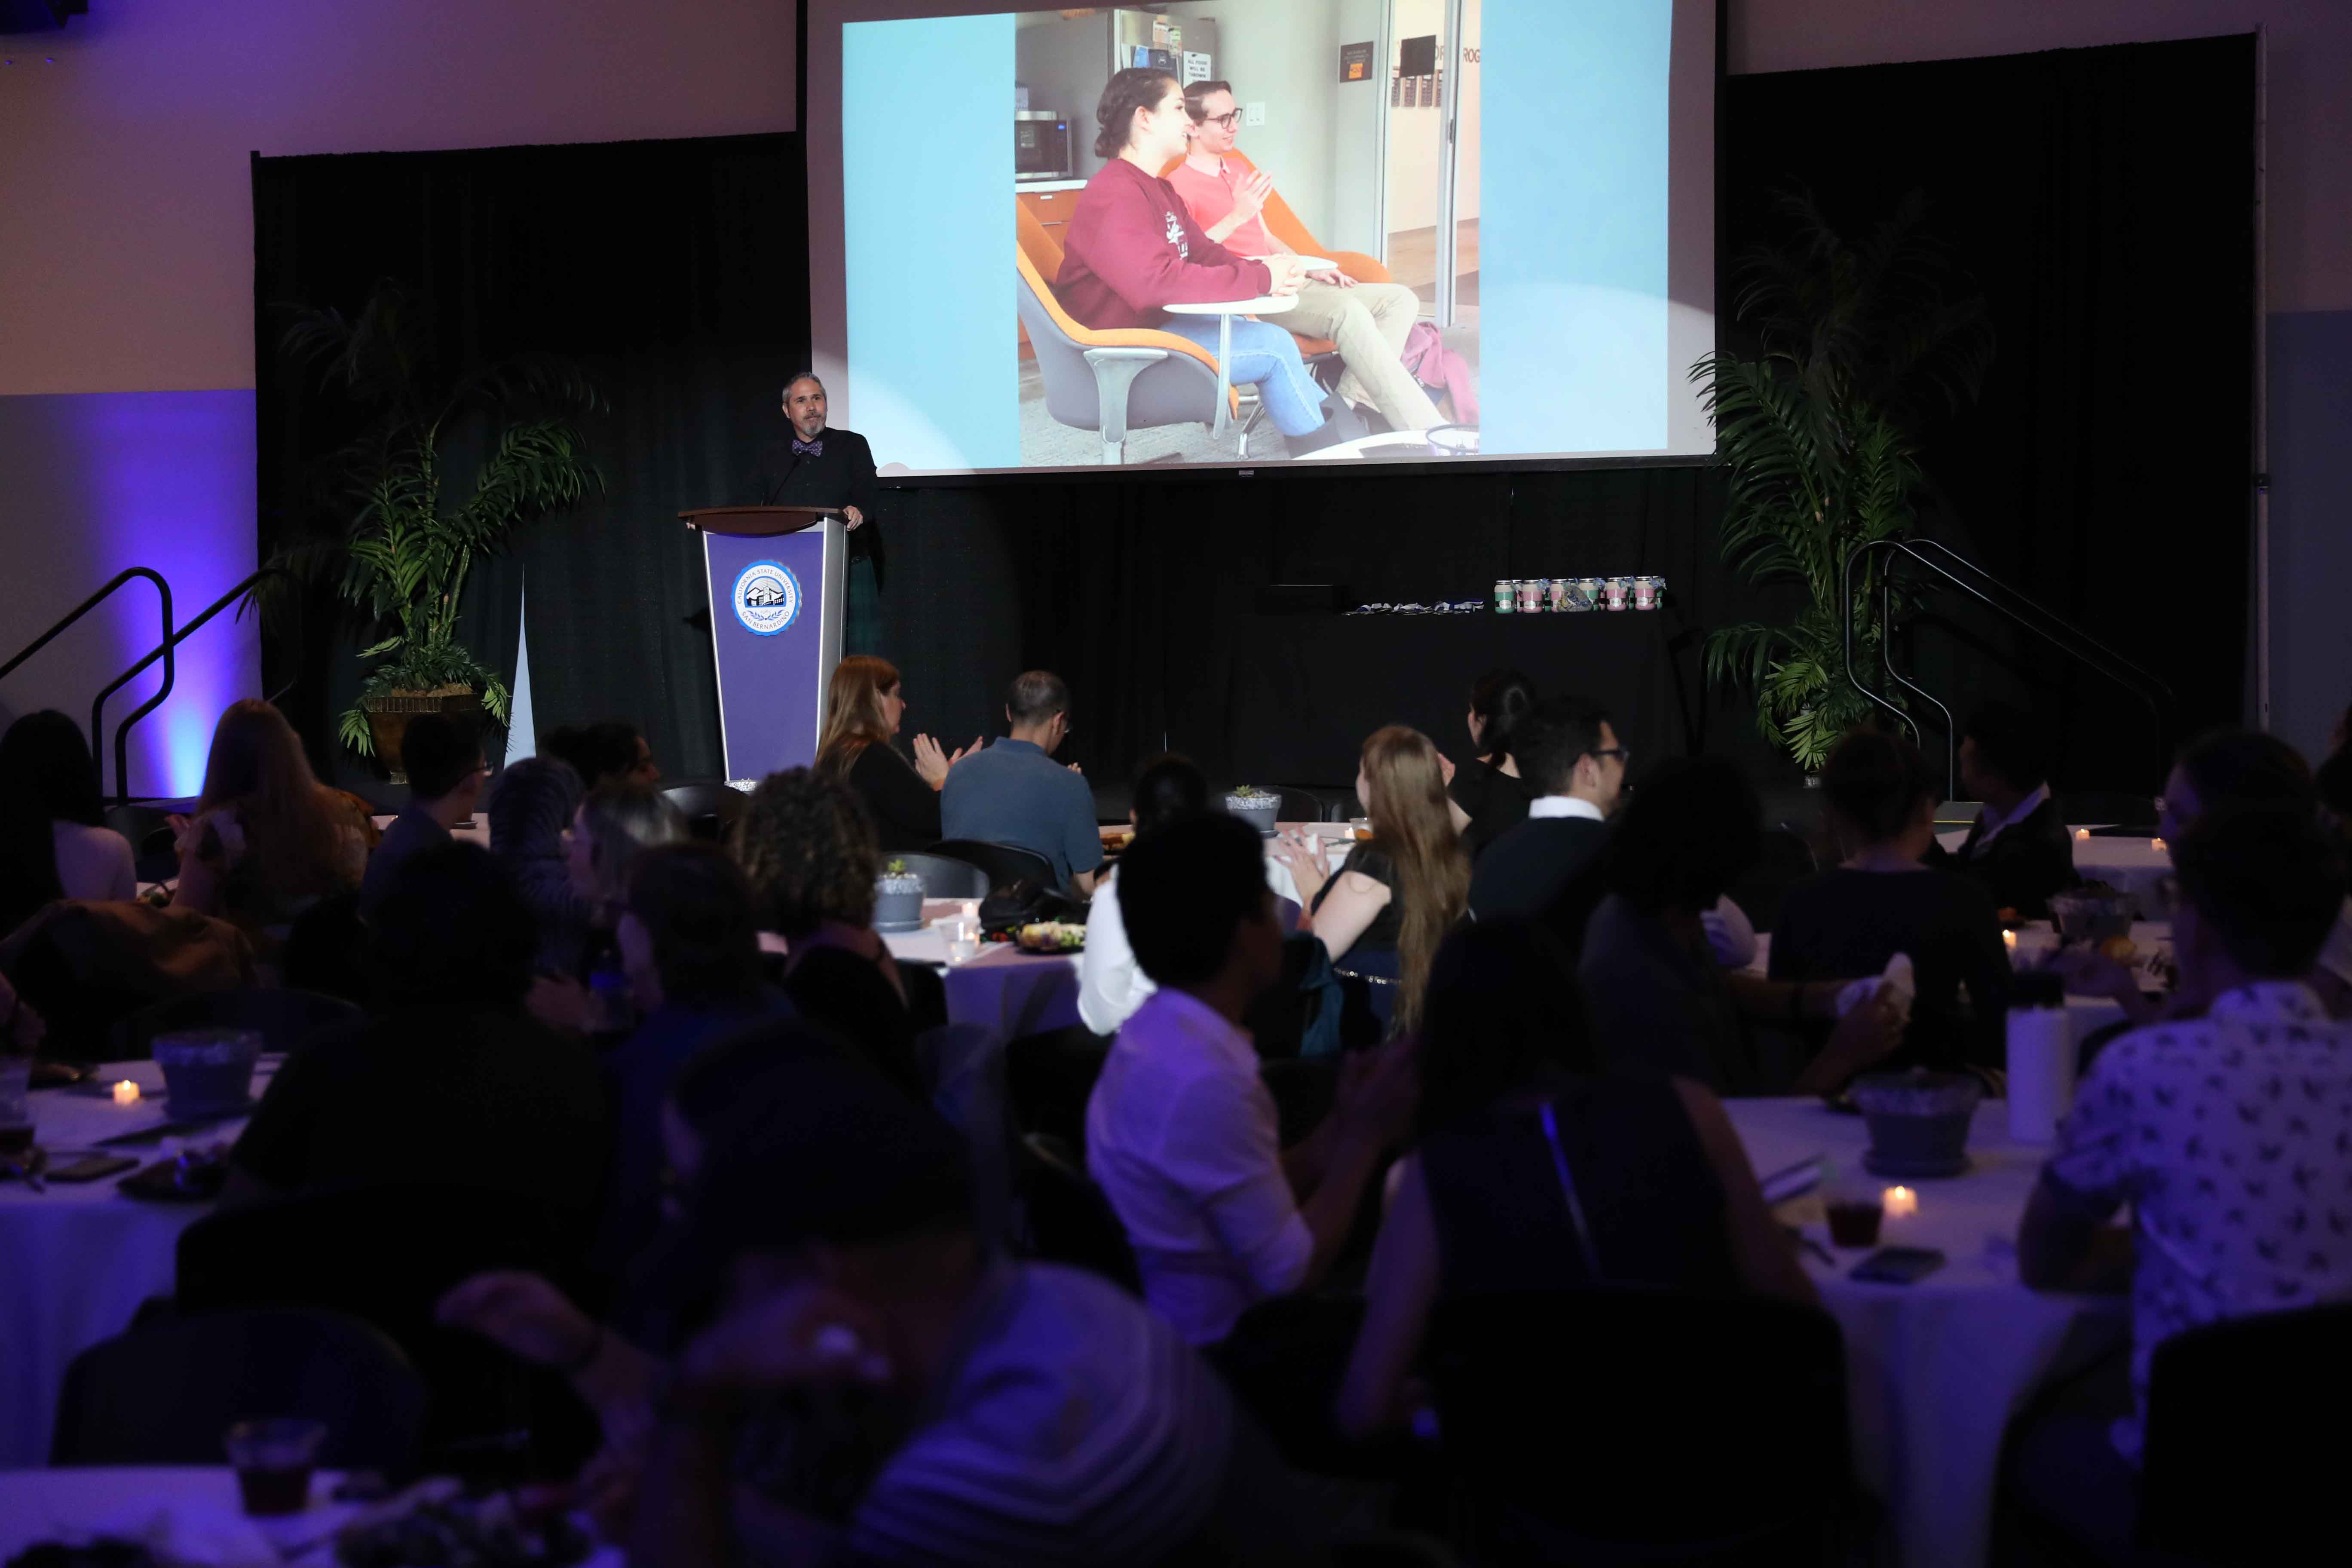 David Marshall, a professor of English who serves as the program's director, said the banquet recognized the outstanding work of the graduating seniors during their time at CSUSB.